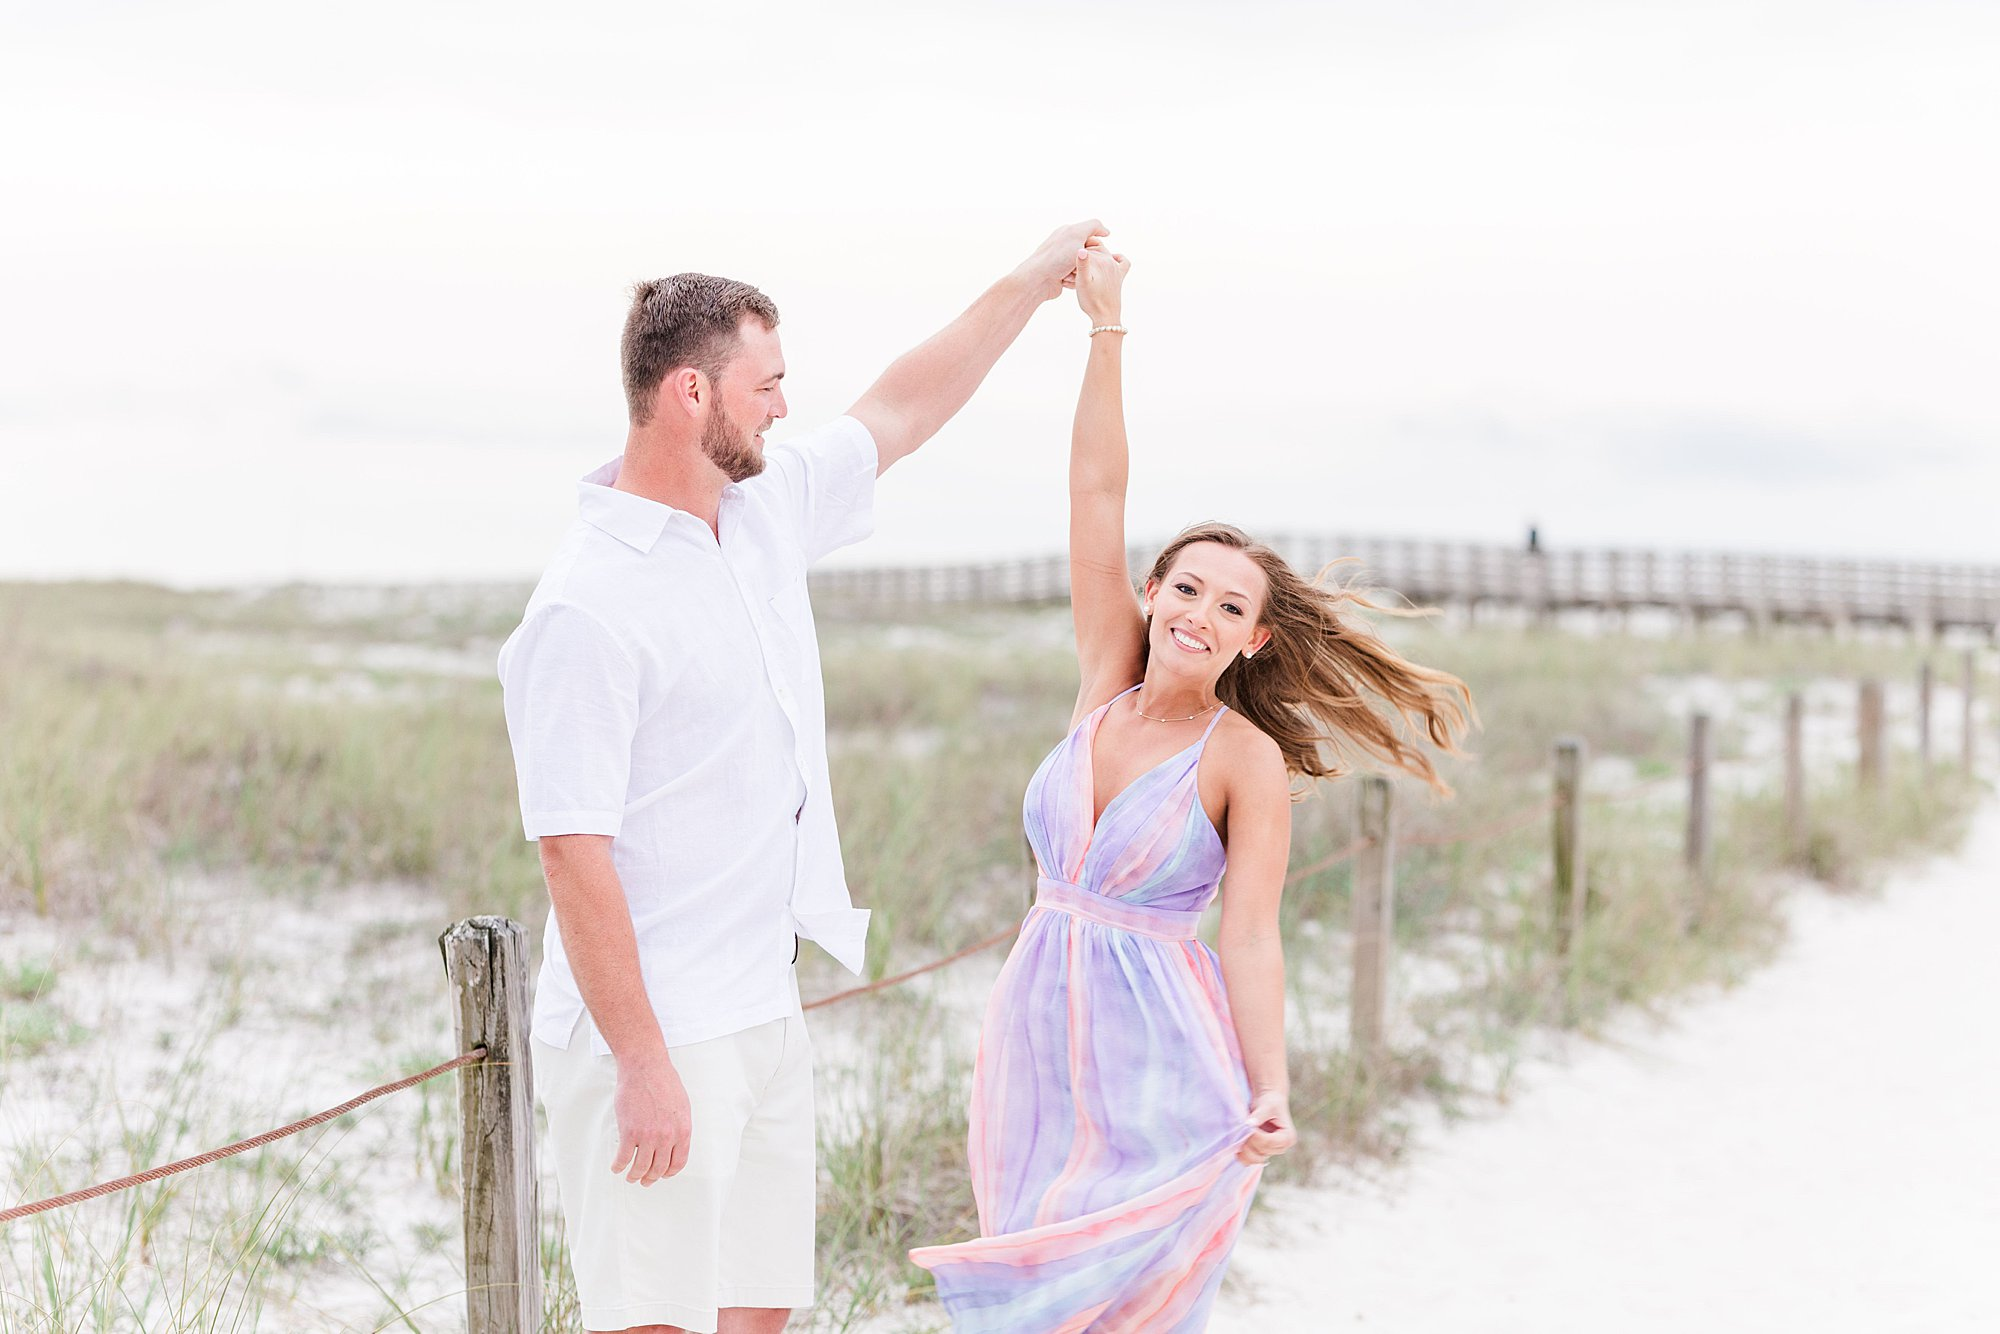 Groom twirling his bride on the beach walkway at their beach engagement session in Orange Beach, Alabama